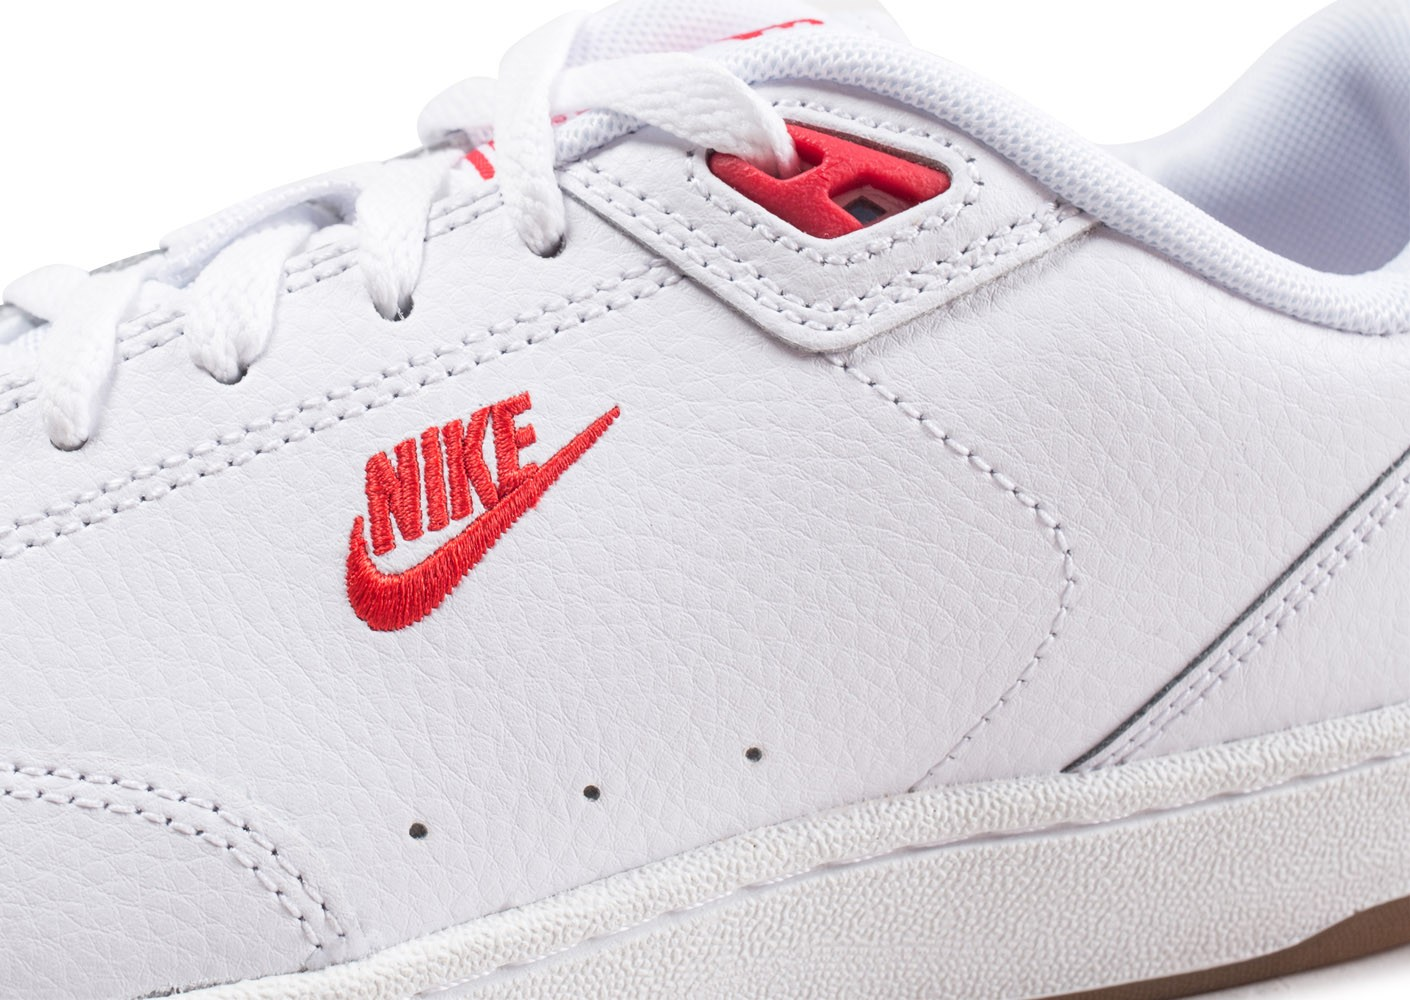 quality design 177e0 29caf ... Chaussures Nike Grandstand 2 Premium blanche et rouge vue dessus